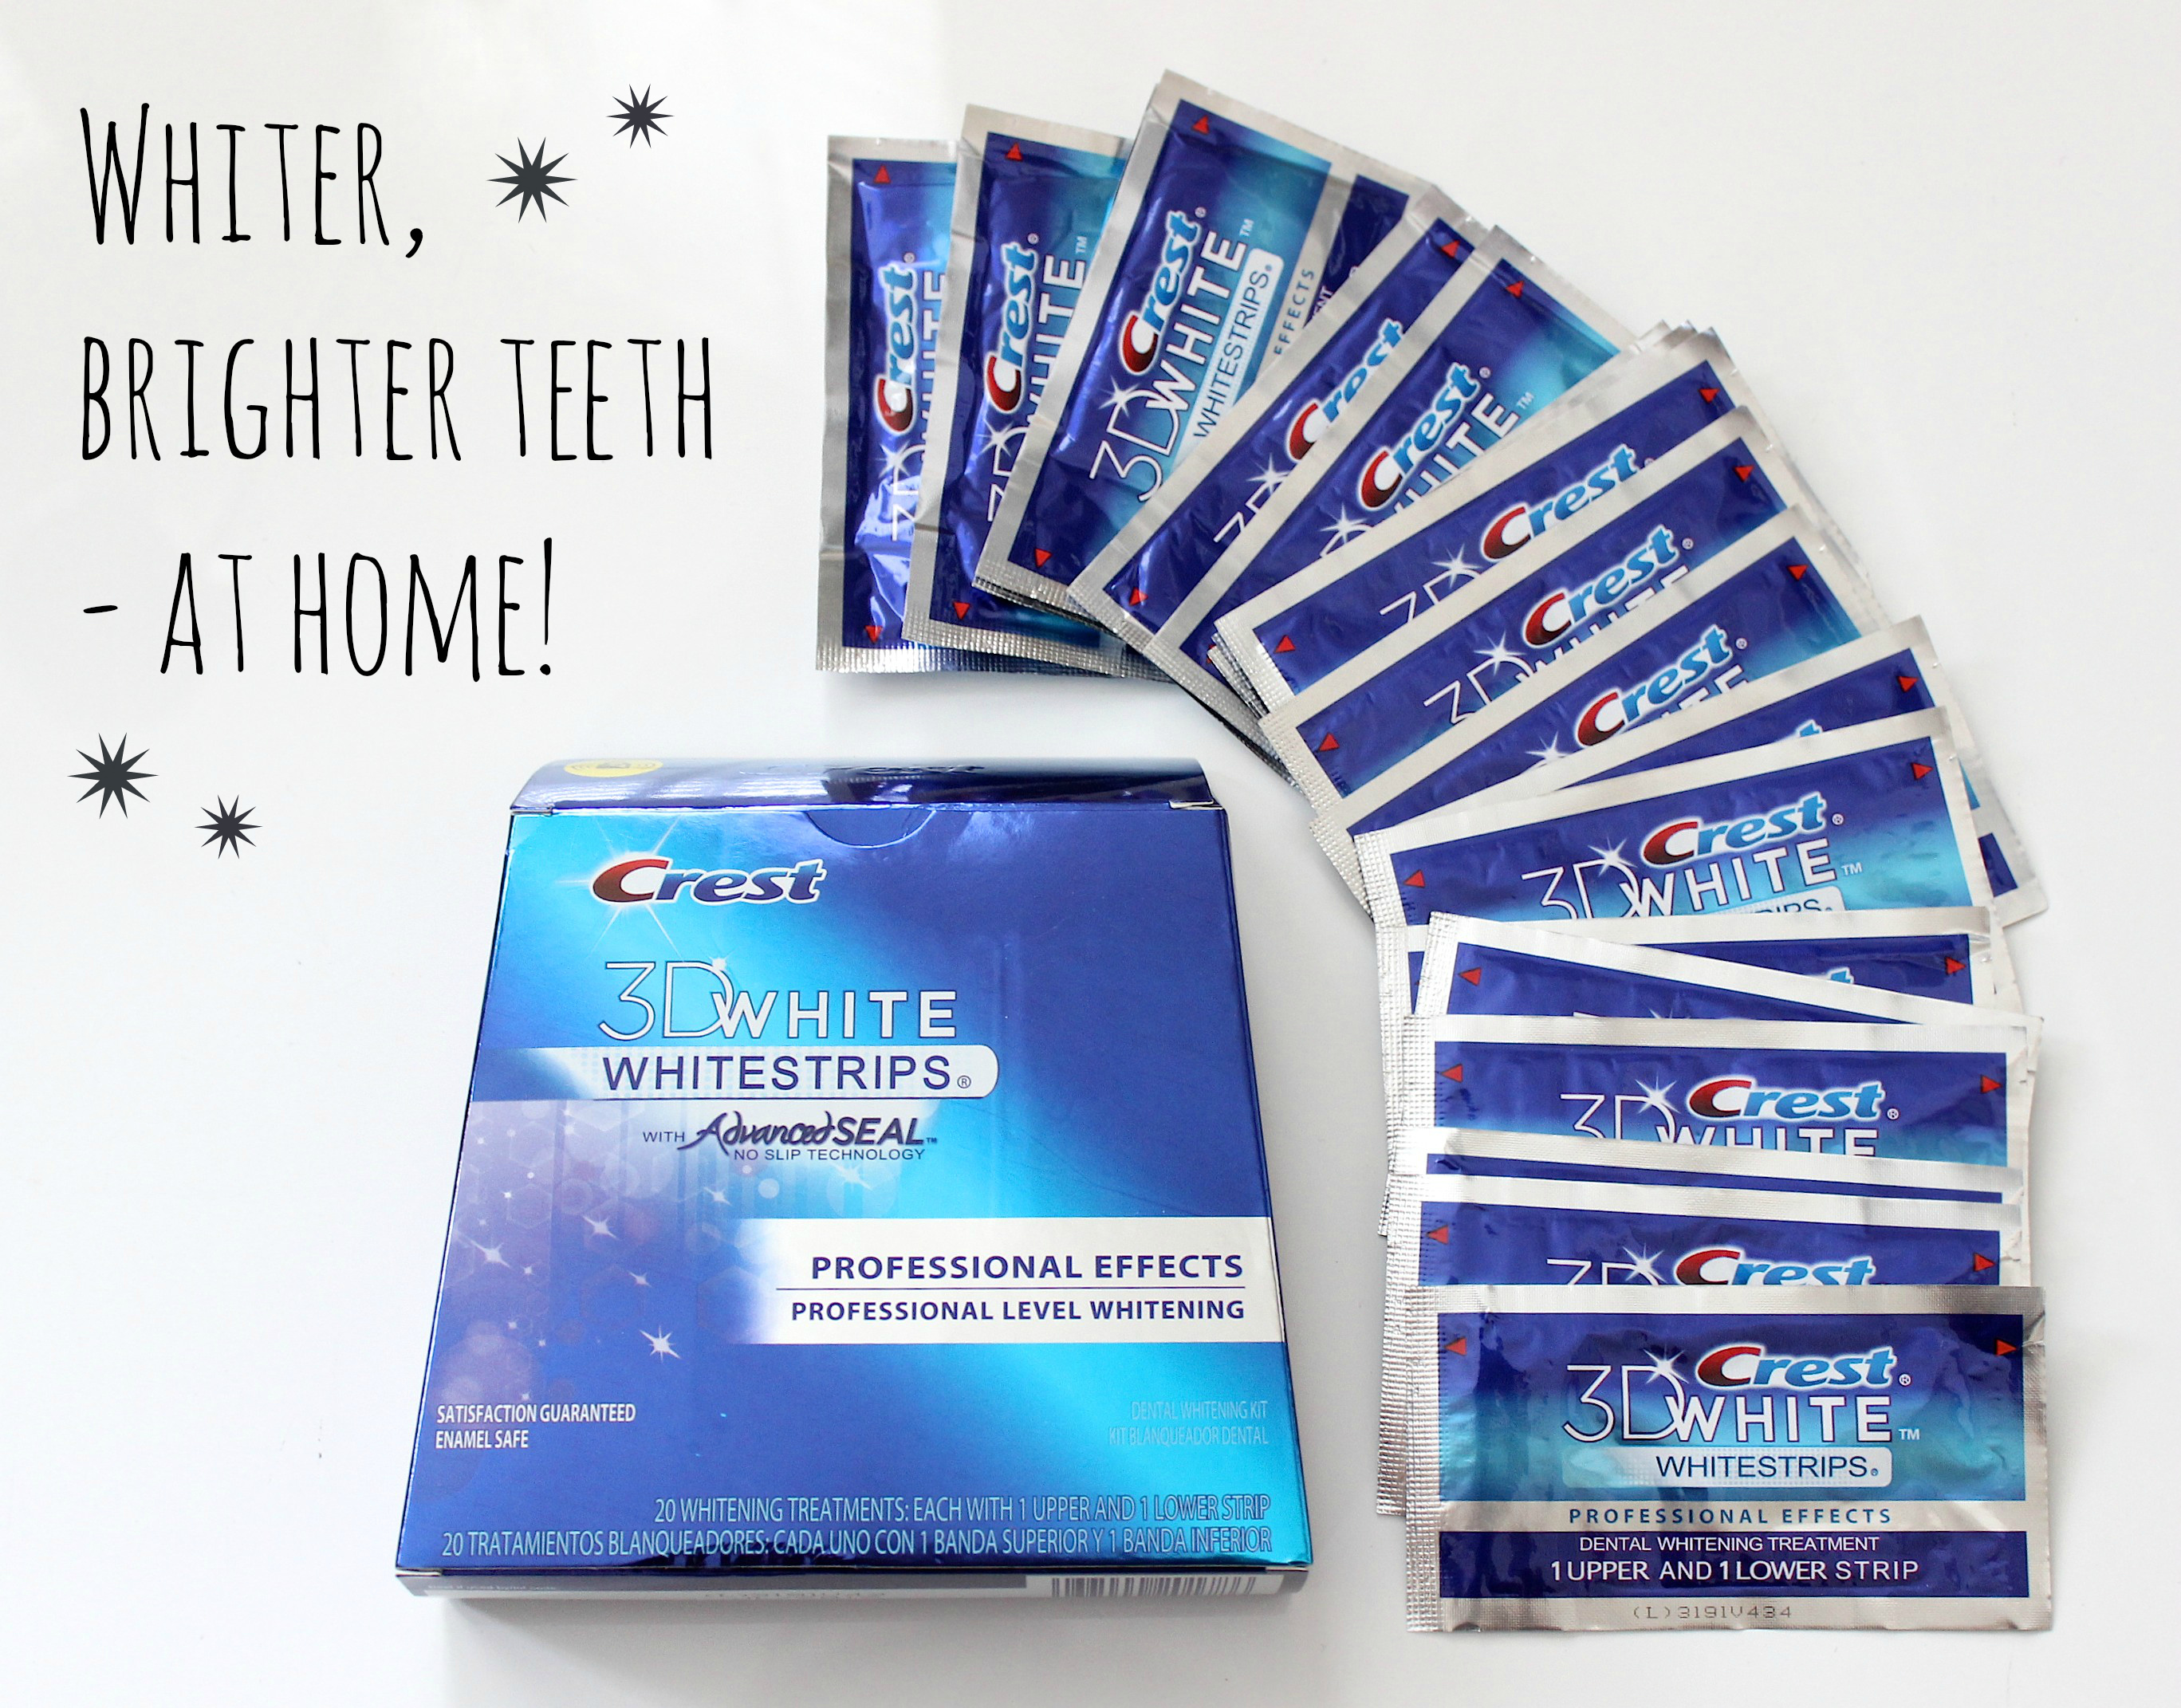 Whitening teeth the American way: Crest 3D Whitestrips Professional Effects review